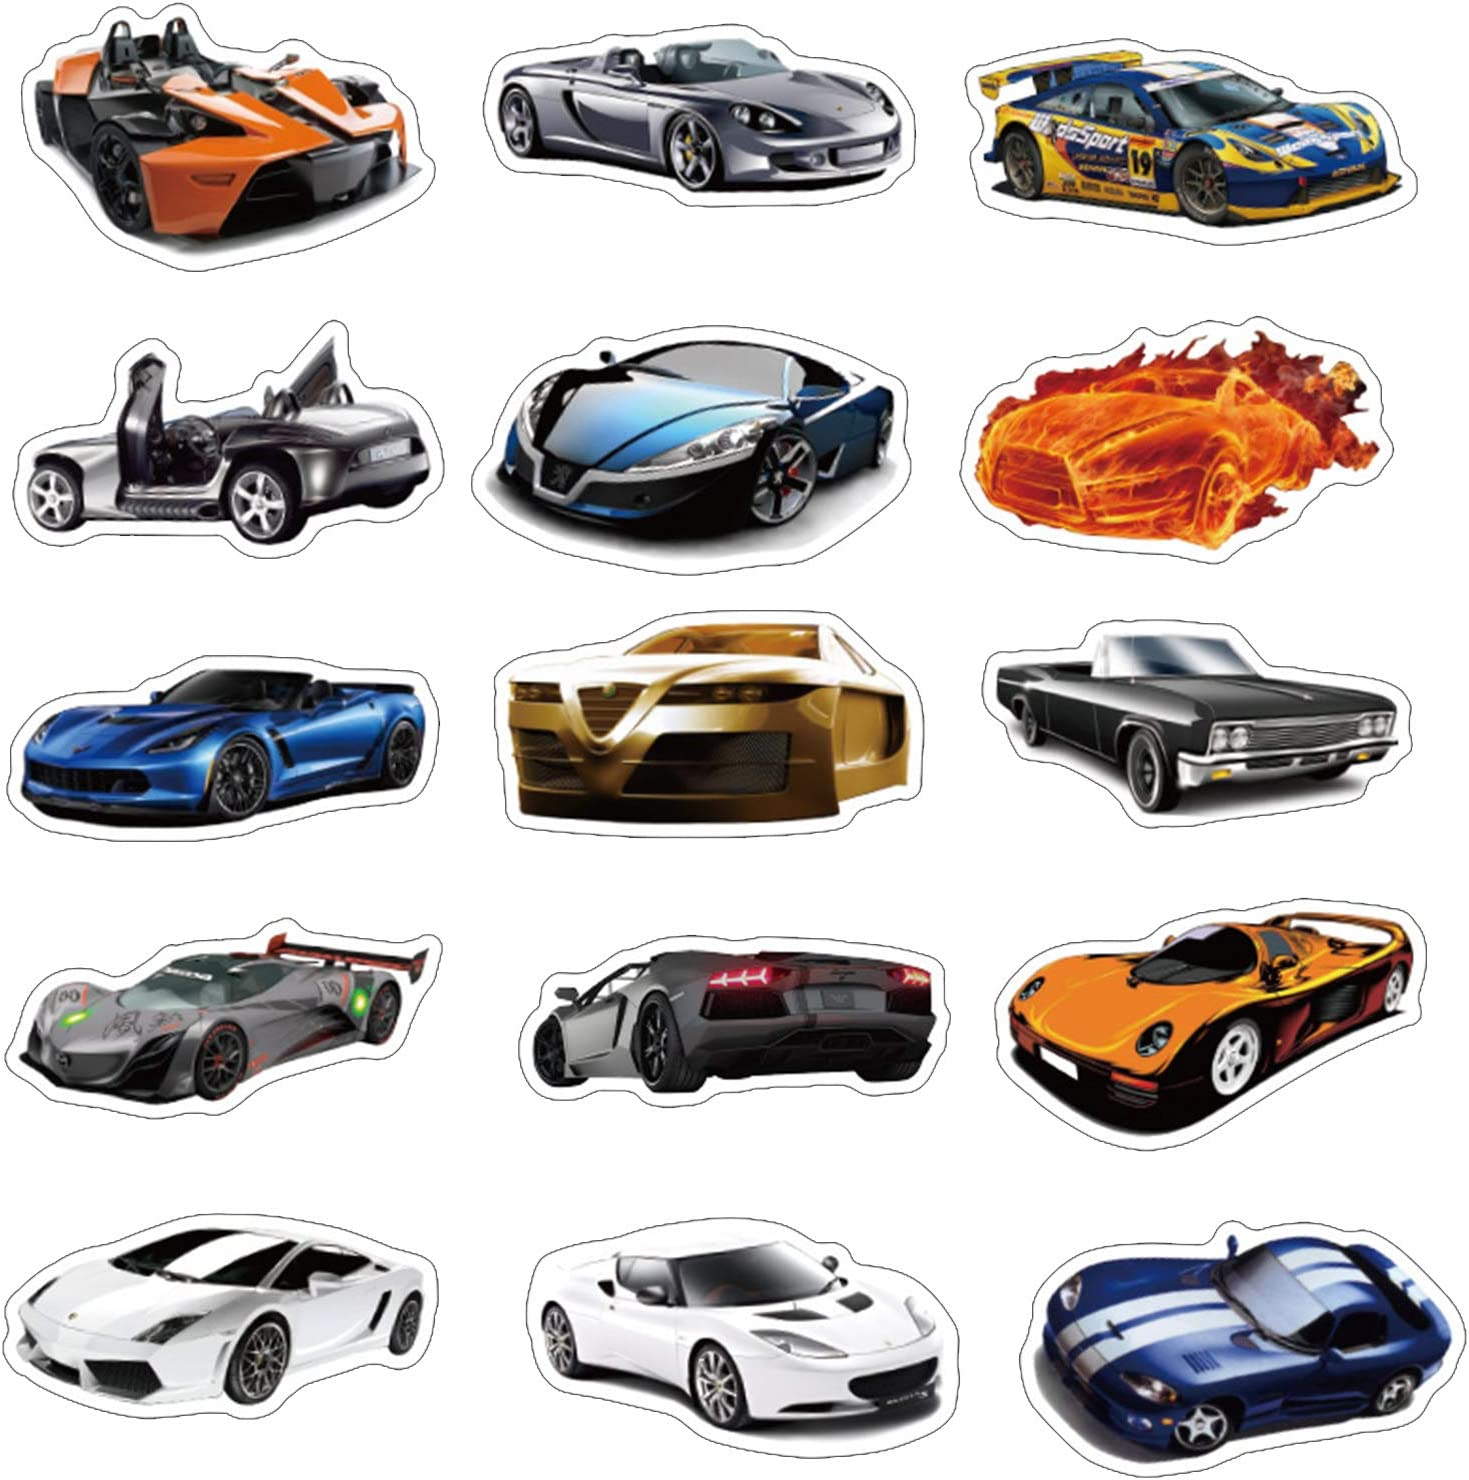 Stickers for Water Bottles Big 50 Pack Sports car Racing car Stickers for Teens,Girls,Adults | Perfect for Waterbottle,Laptop,Phone,Hydro Flask Travel Vinyl Stickers Waterproof (TZ125 Series)